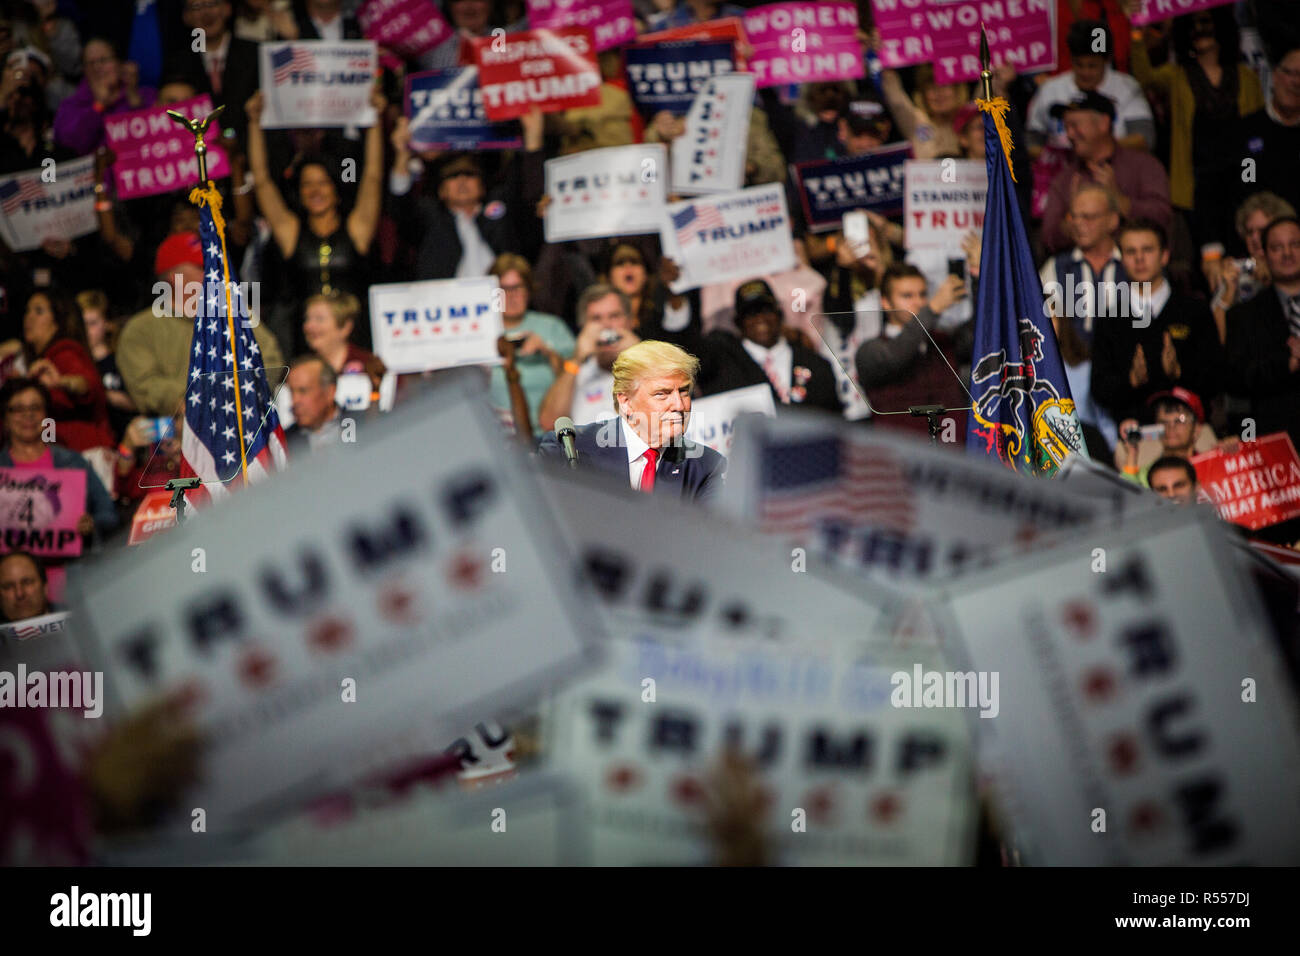 Presidential hopeful Donald J. Trump (R-Ny) campaigns at the Giant Center in Hersey, Pennsylvania. Stock Photo